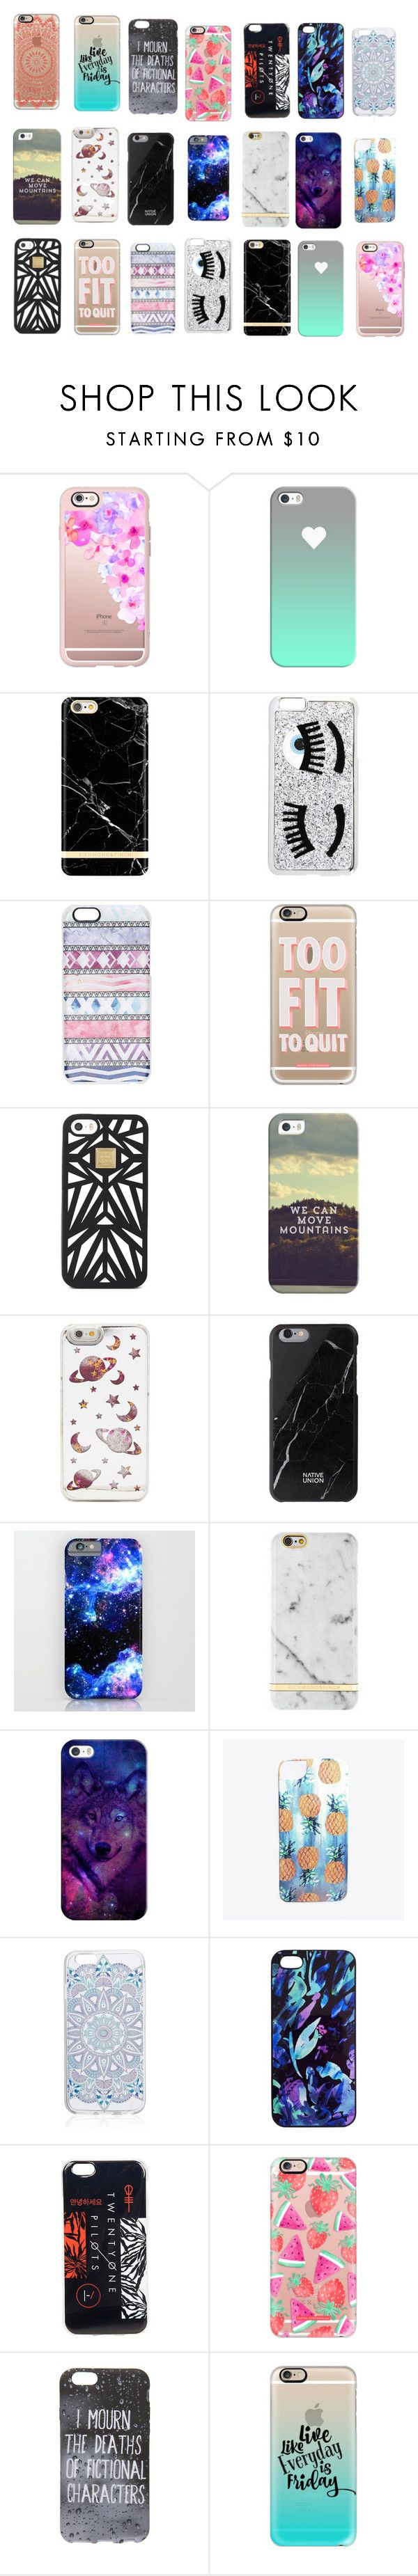 """""""phone cases 3"""" by myage0rge ❤ liked on Polyvore featuring interior, interiors, interior design, home, home decor, interior decorating, Casetify, Chiara Ferragni, Hervé Léger and Native Union"""